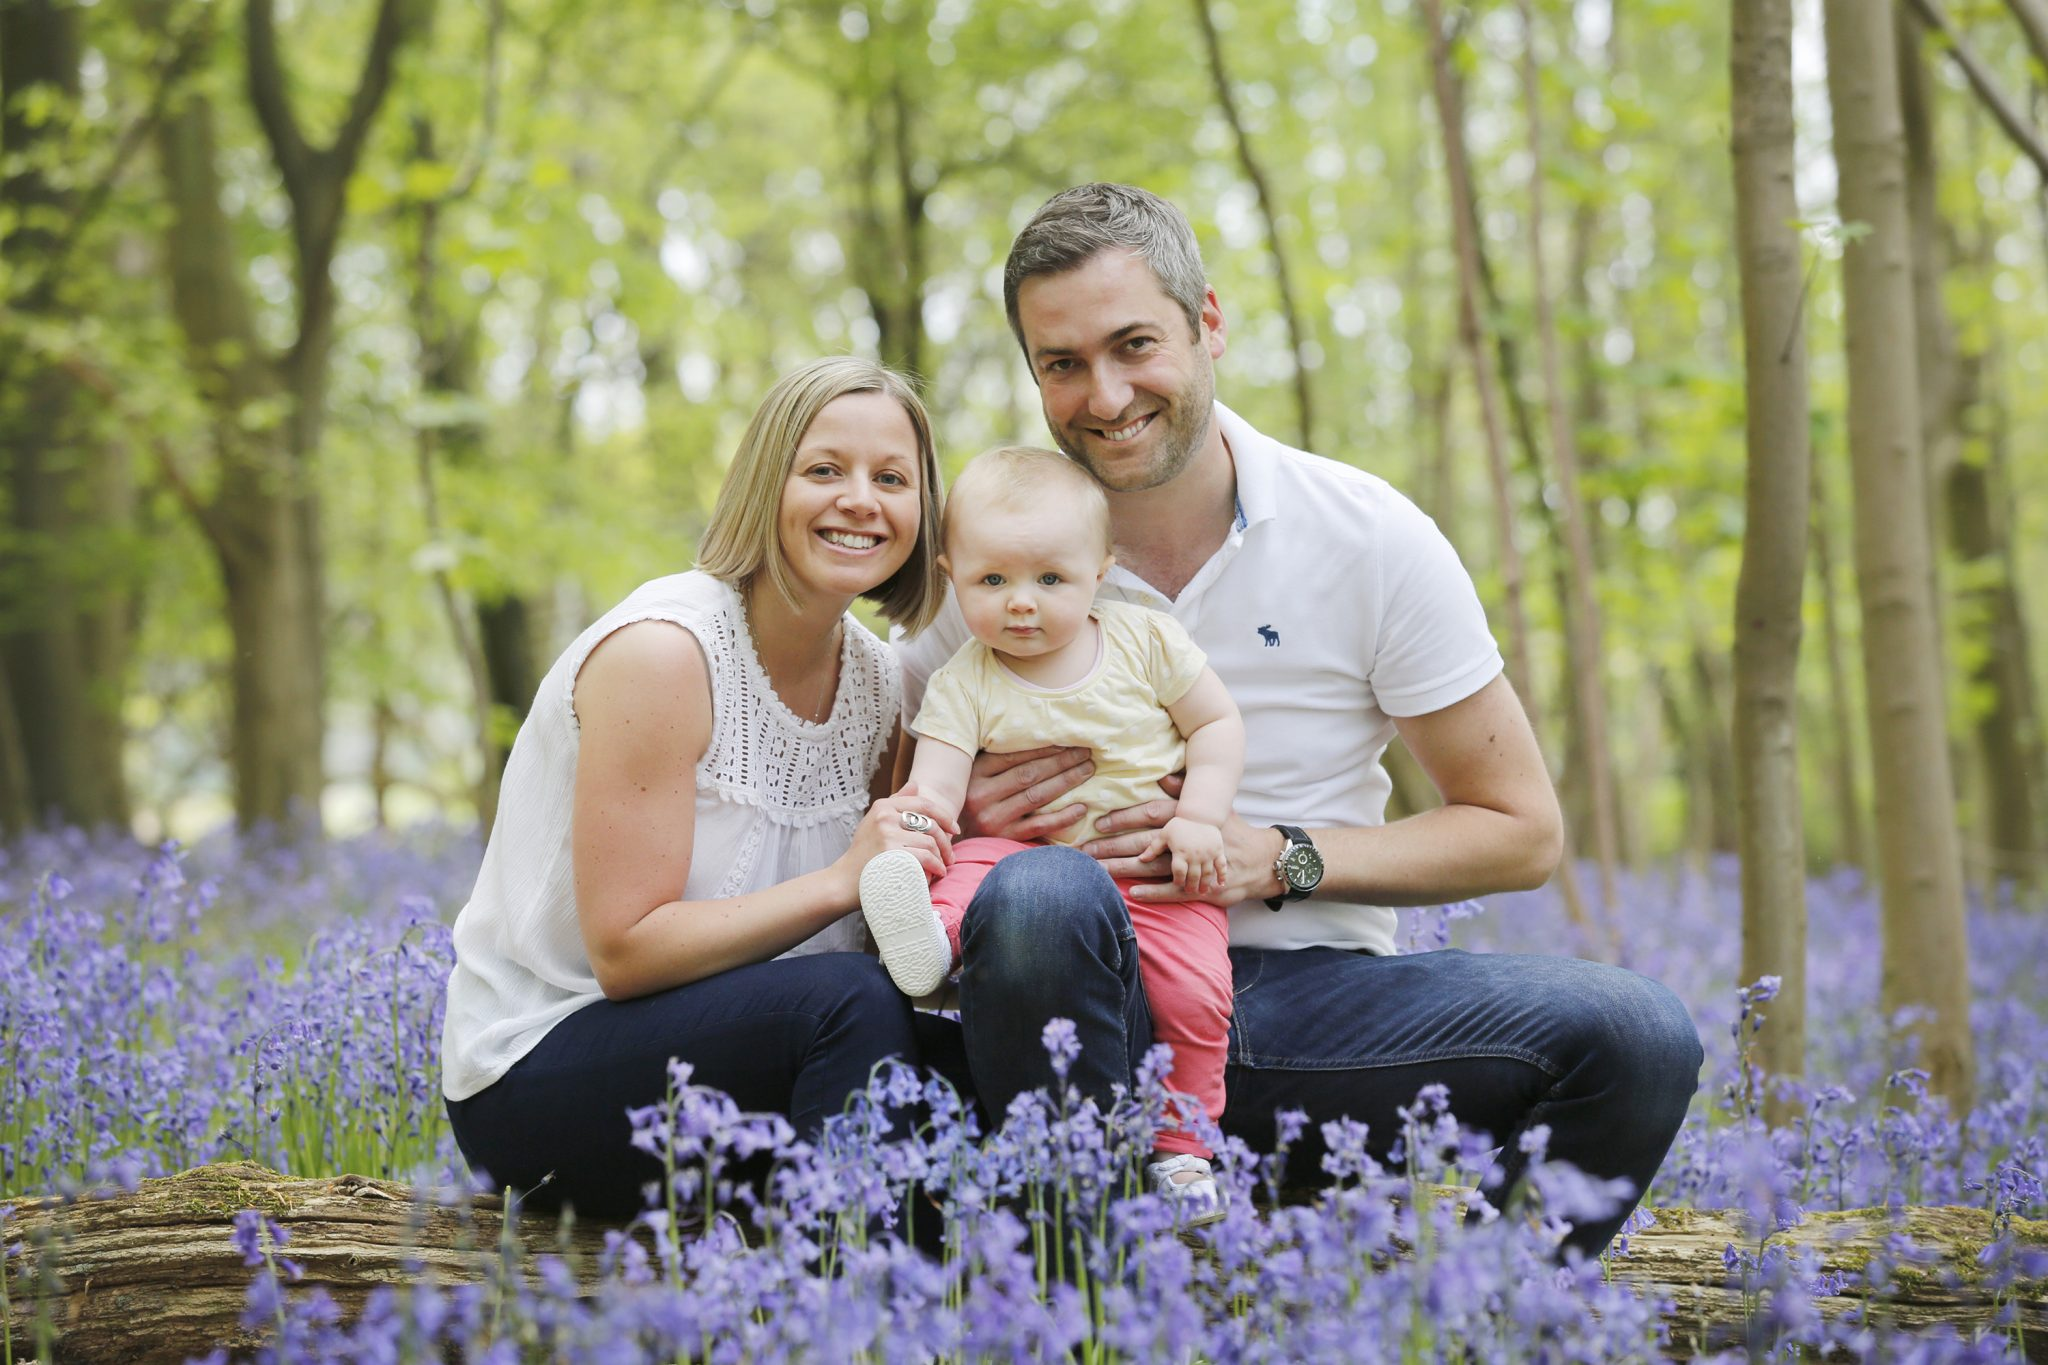 Family photographed in bluebell wood